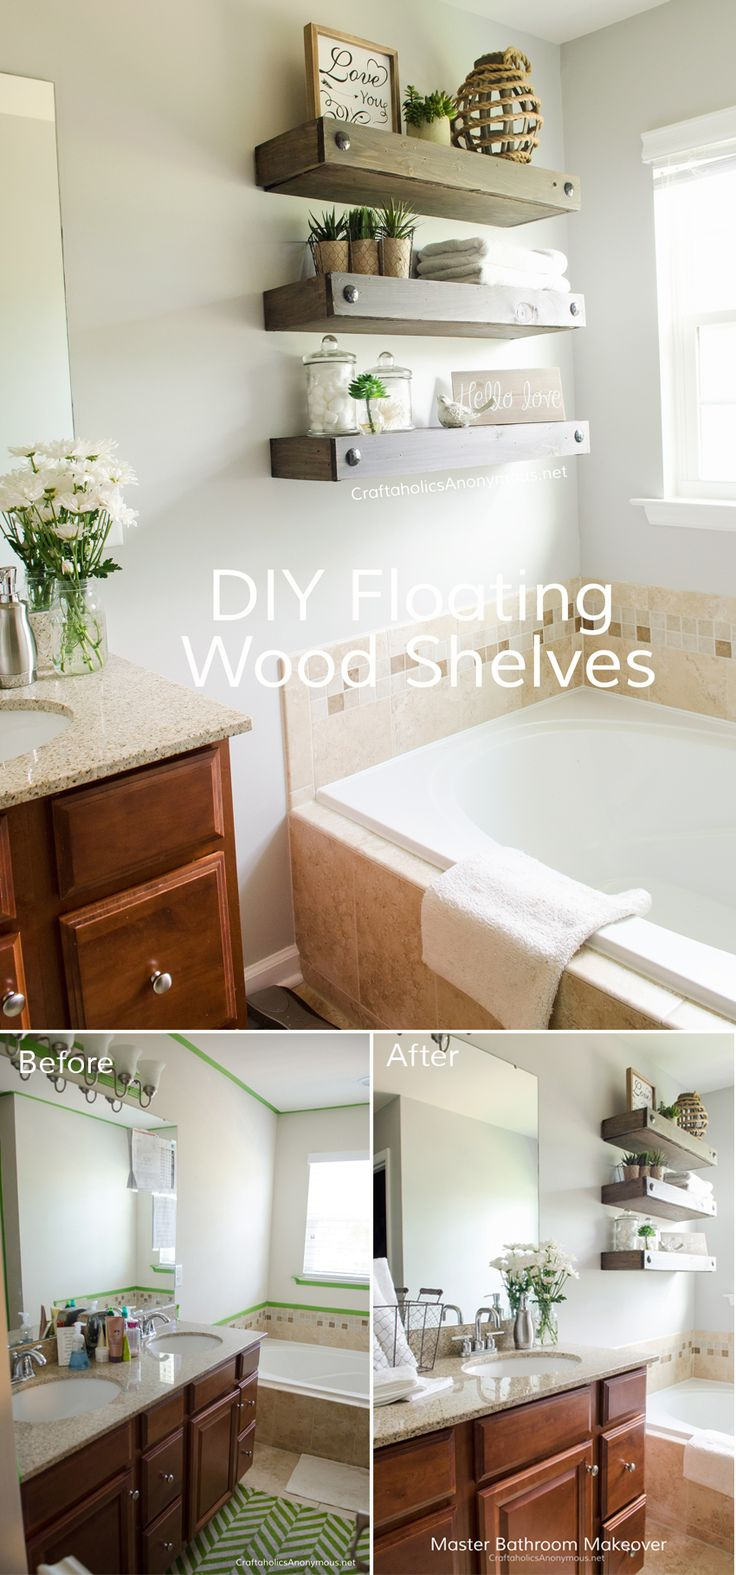 Diy bathroom wall decor ideas  best home  decor images on pinterest  budget for the home and